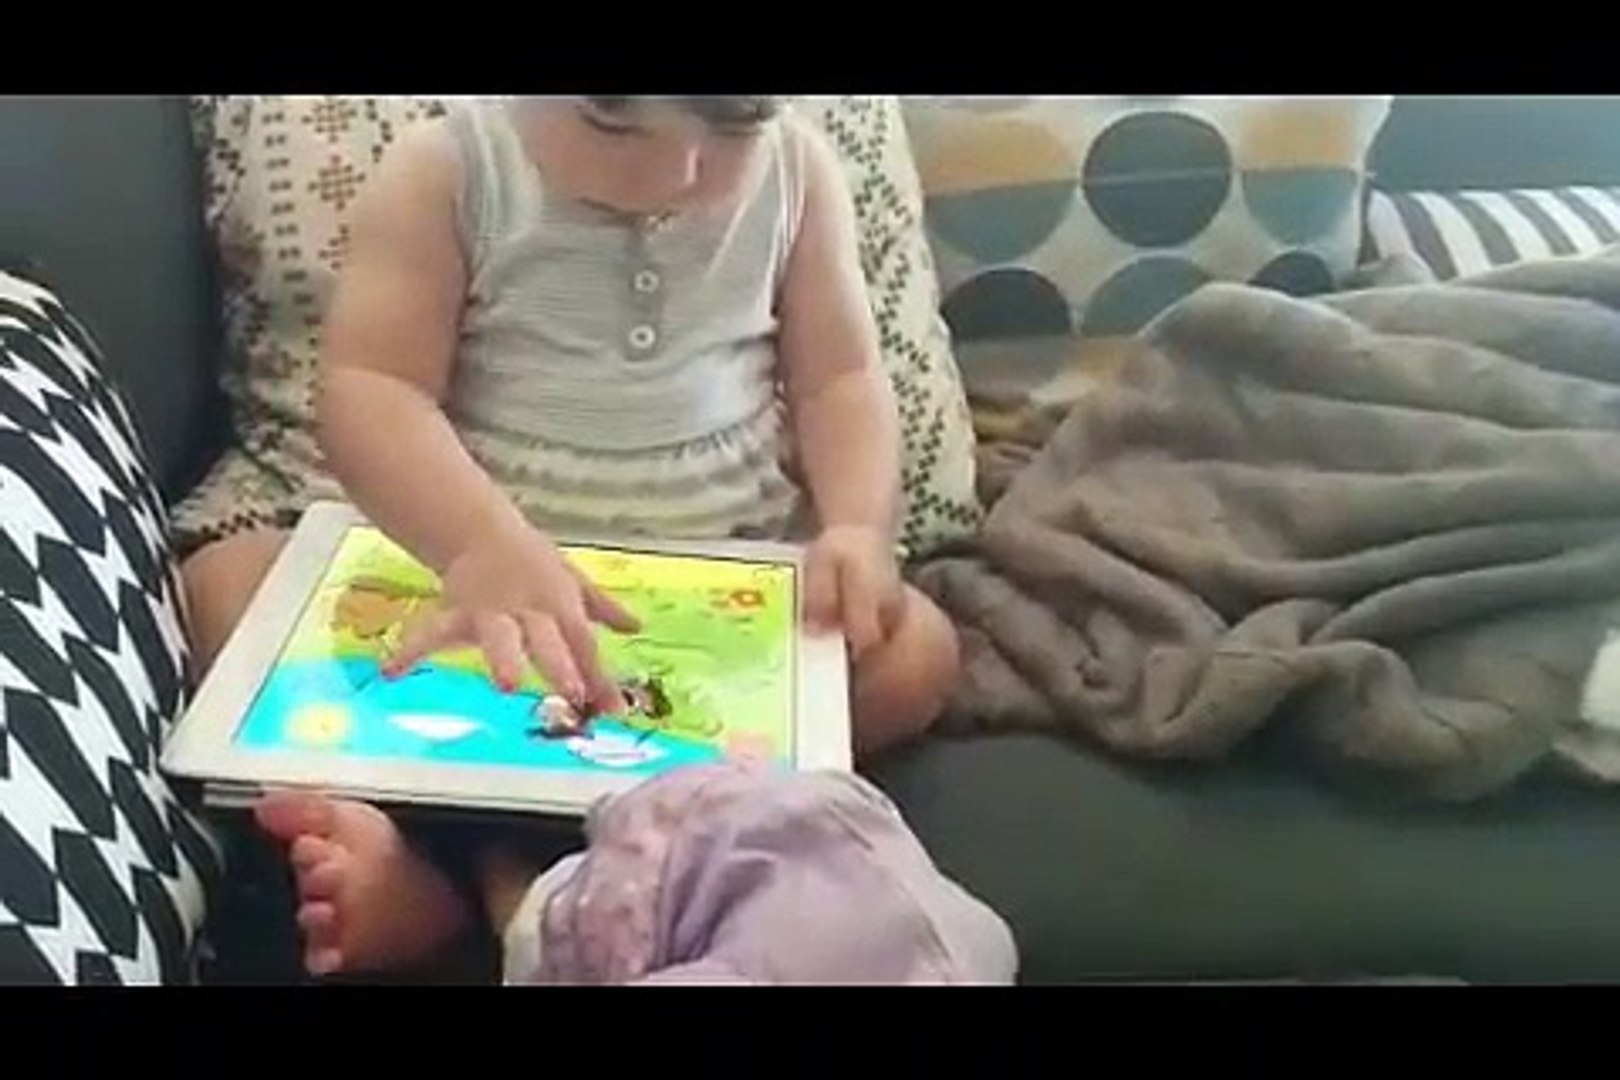 Cute kid playing Kids 1st Puzzles game